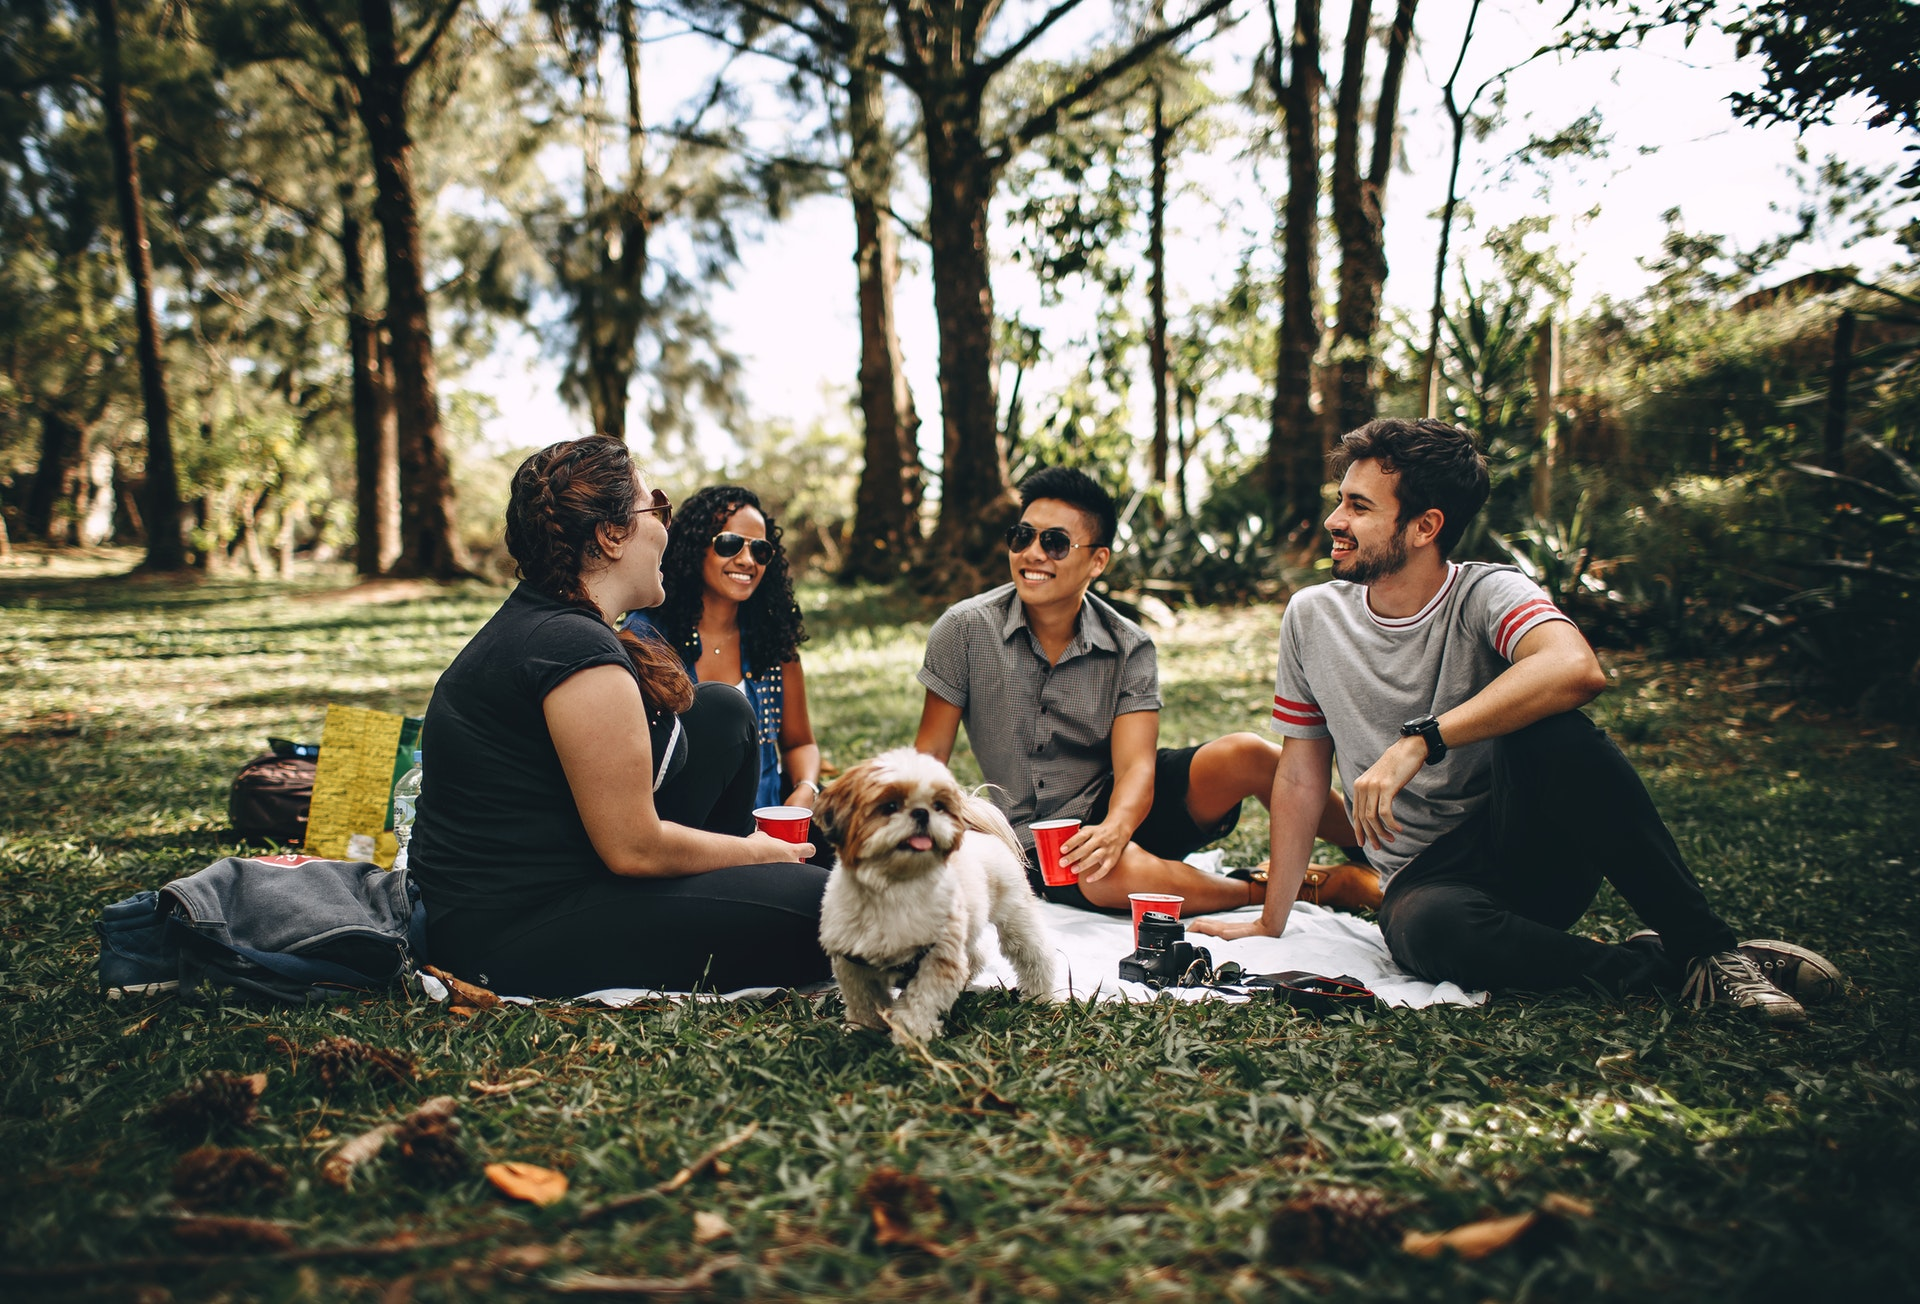 Man with dog at picnic because he knows how to choose a dog breed that suits him